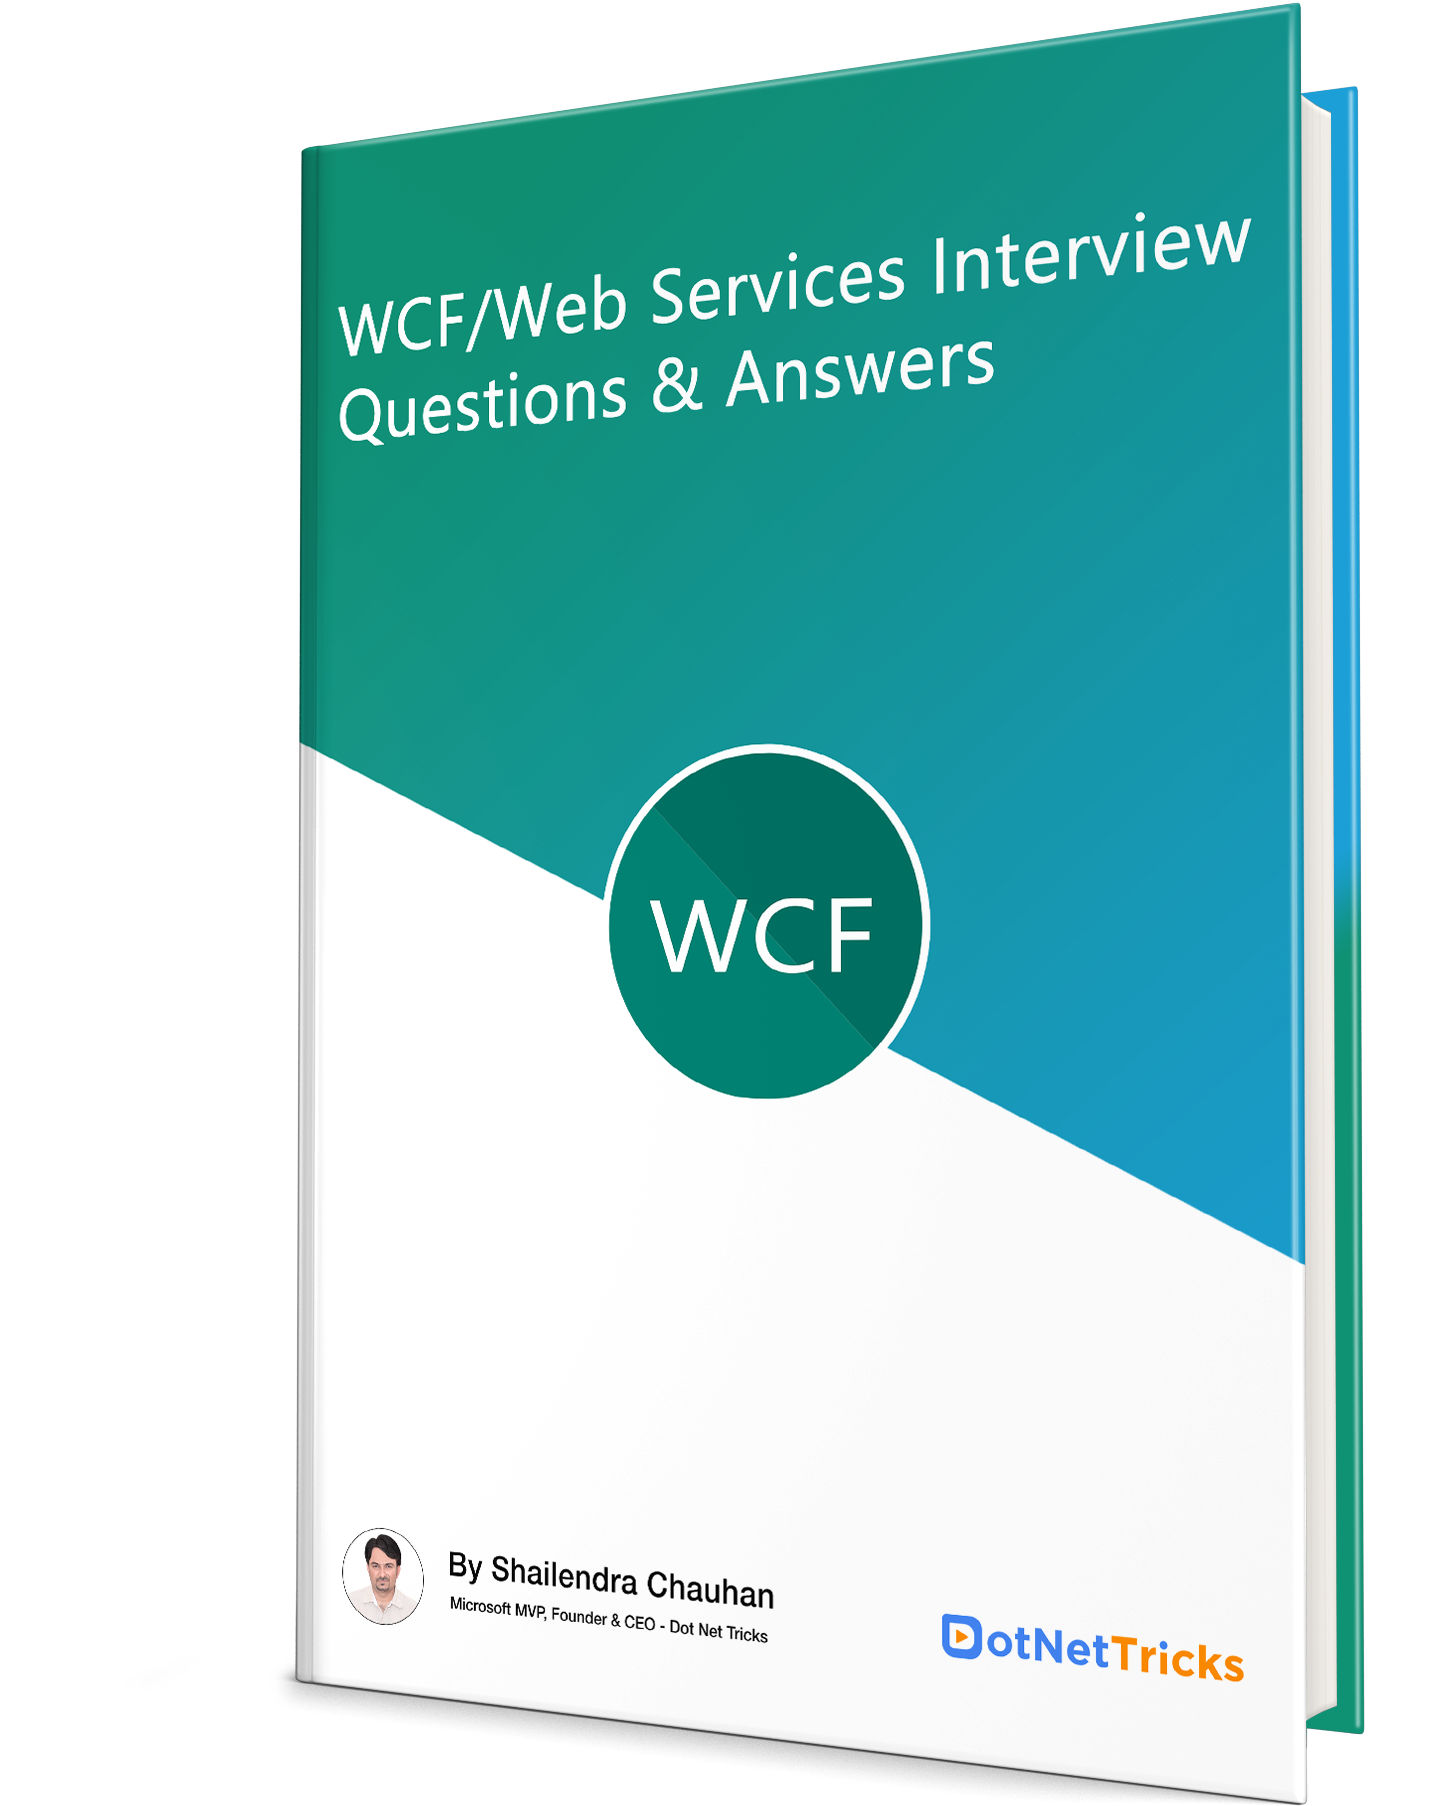 WCF/Web Services Interview Questions & Answers eBook